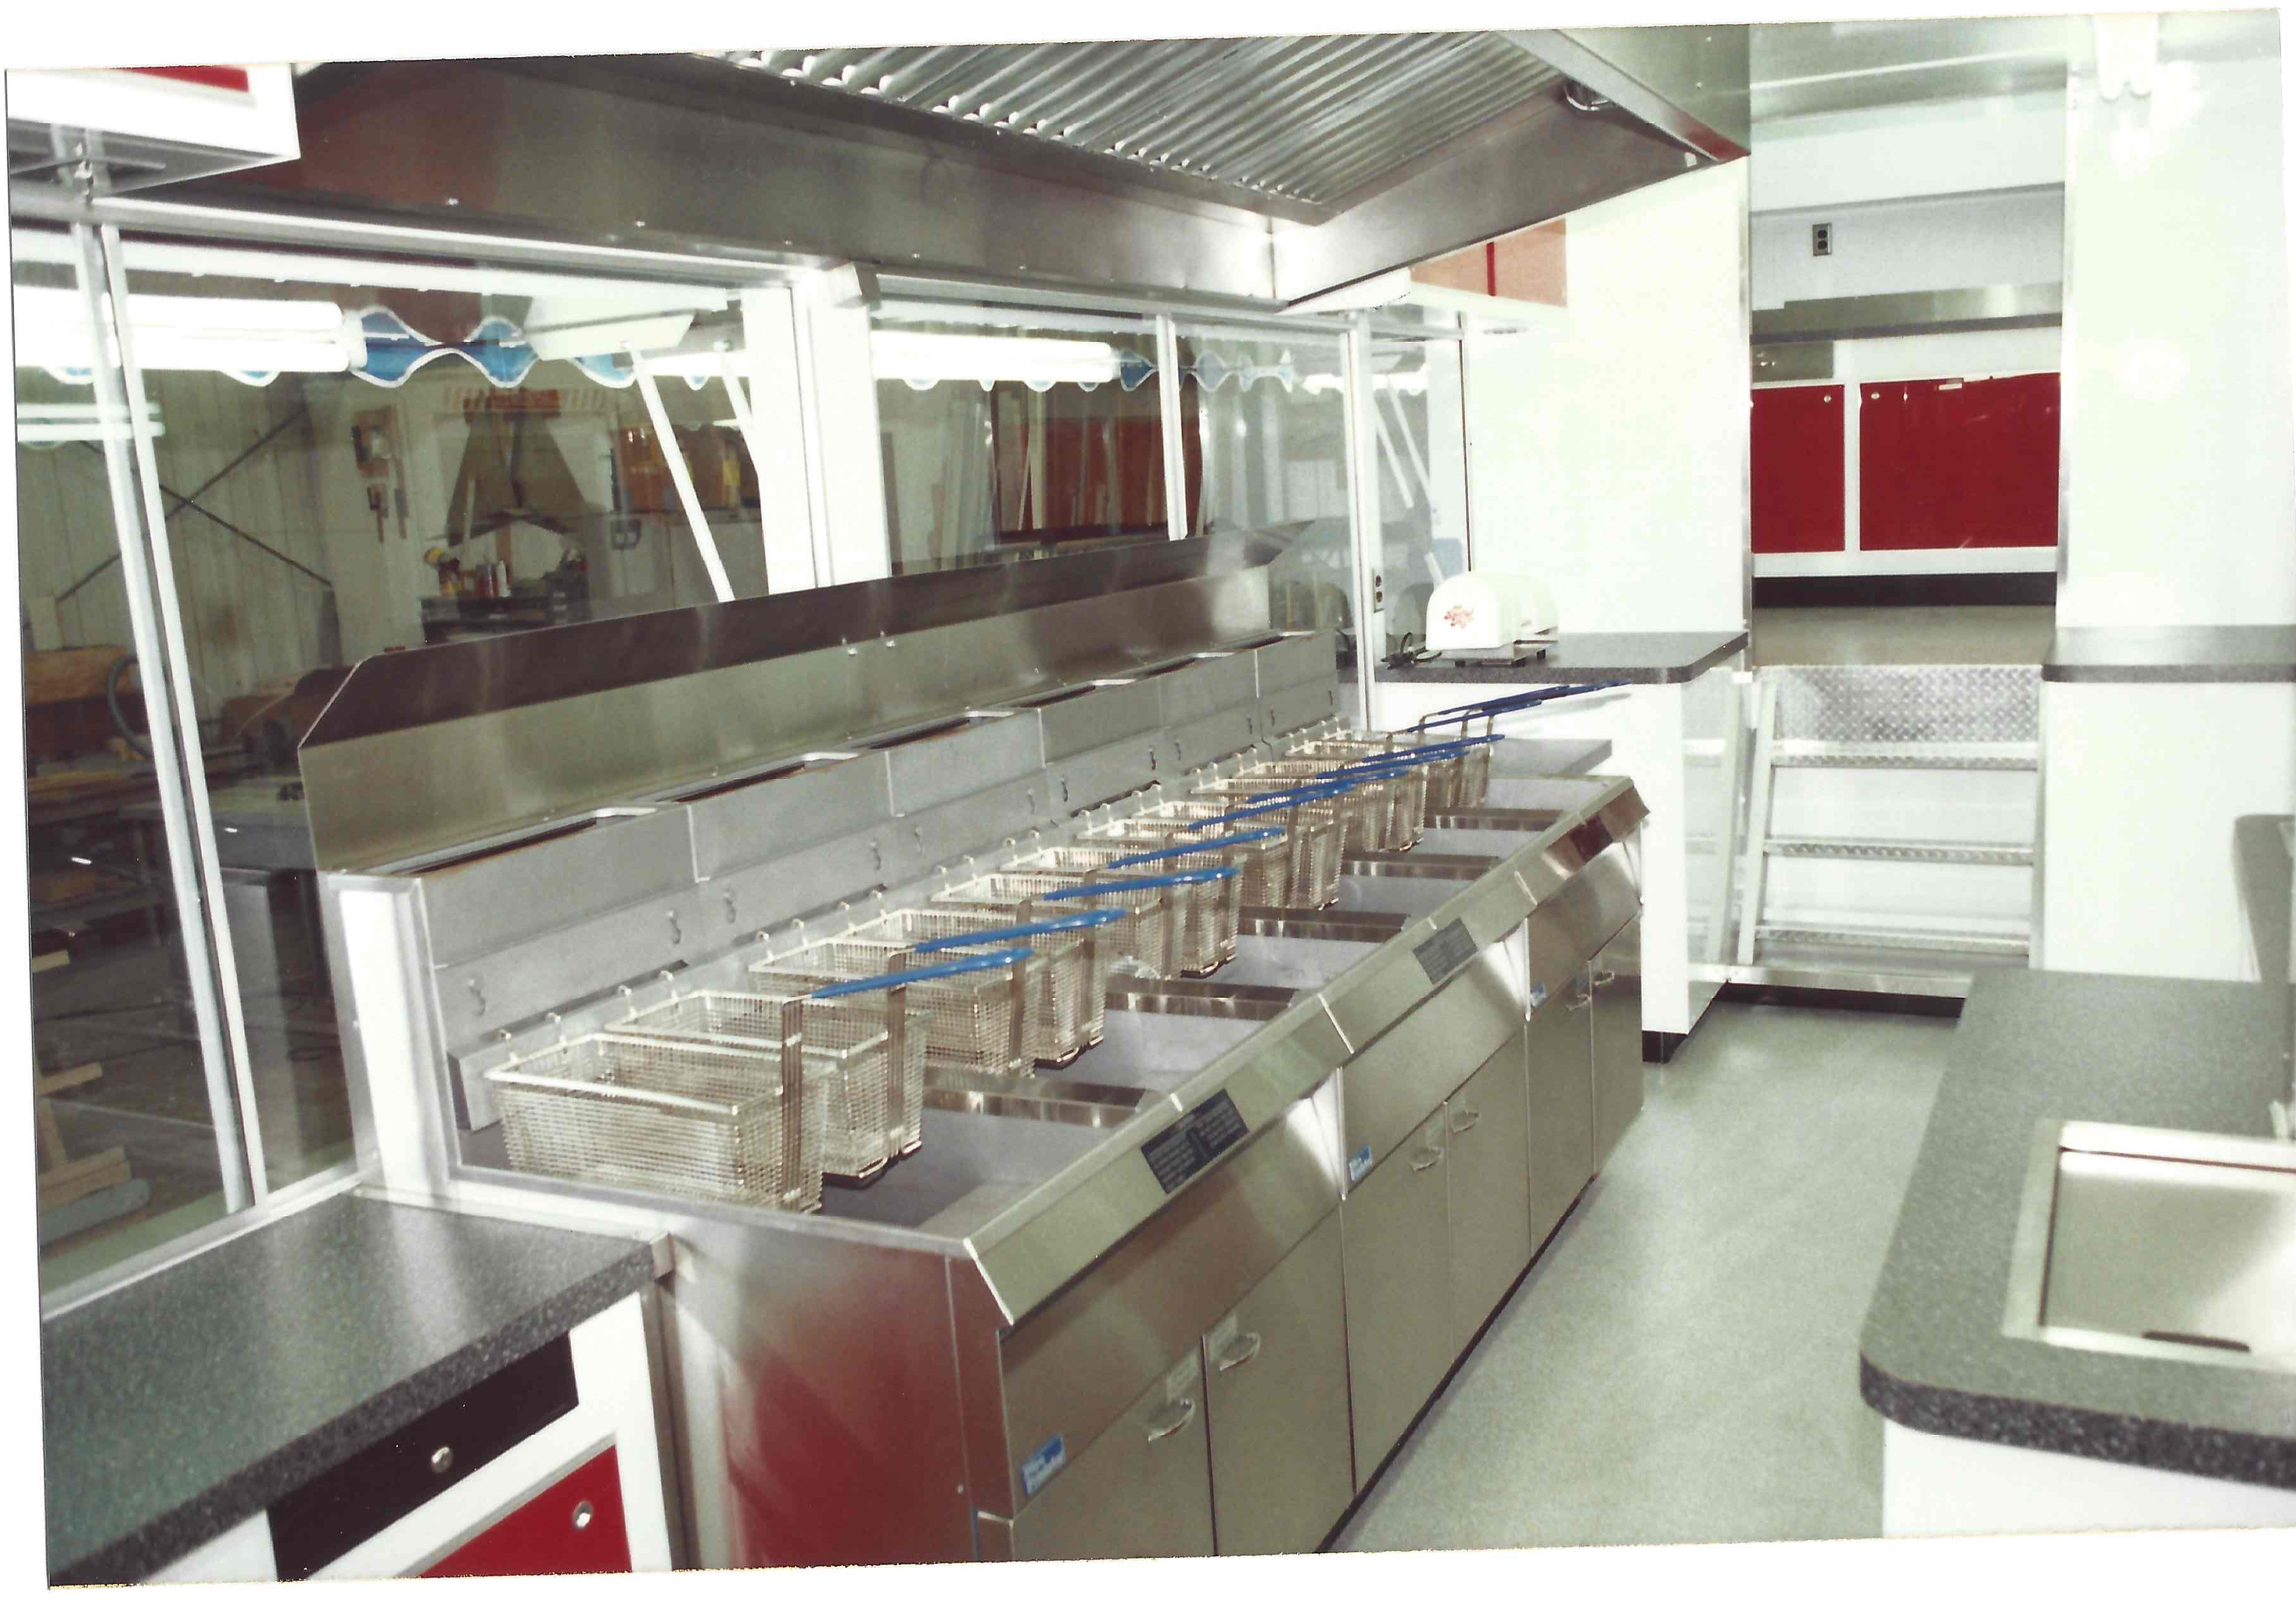 Food truck interior images galleries for Food truck interior design